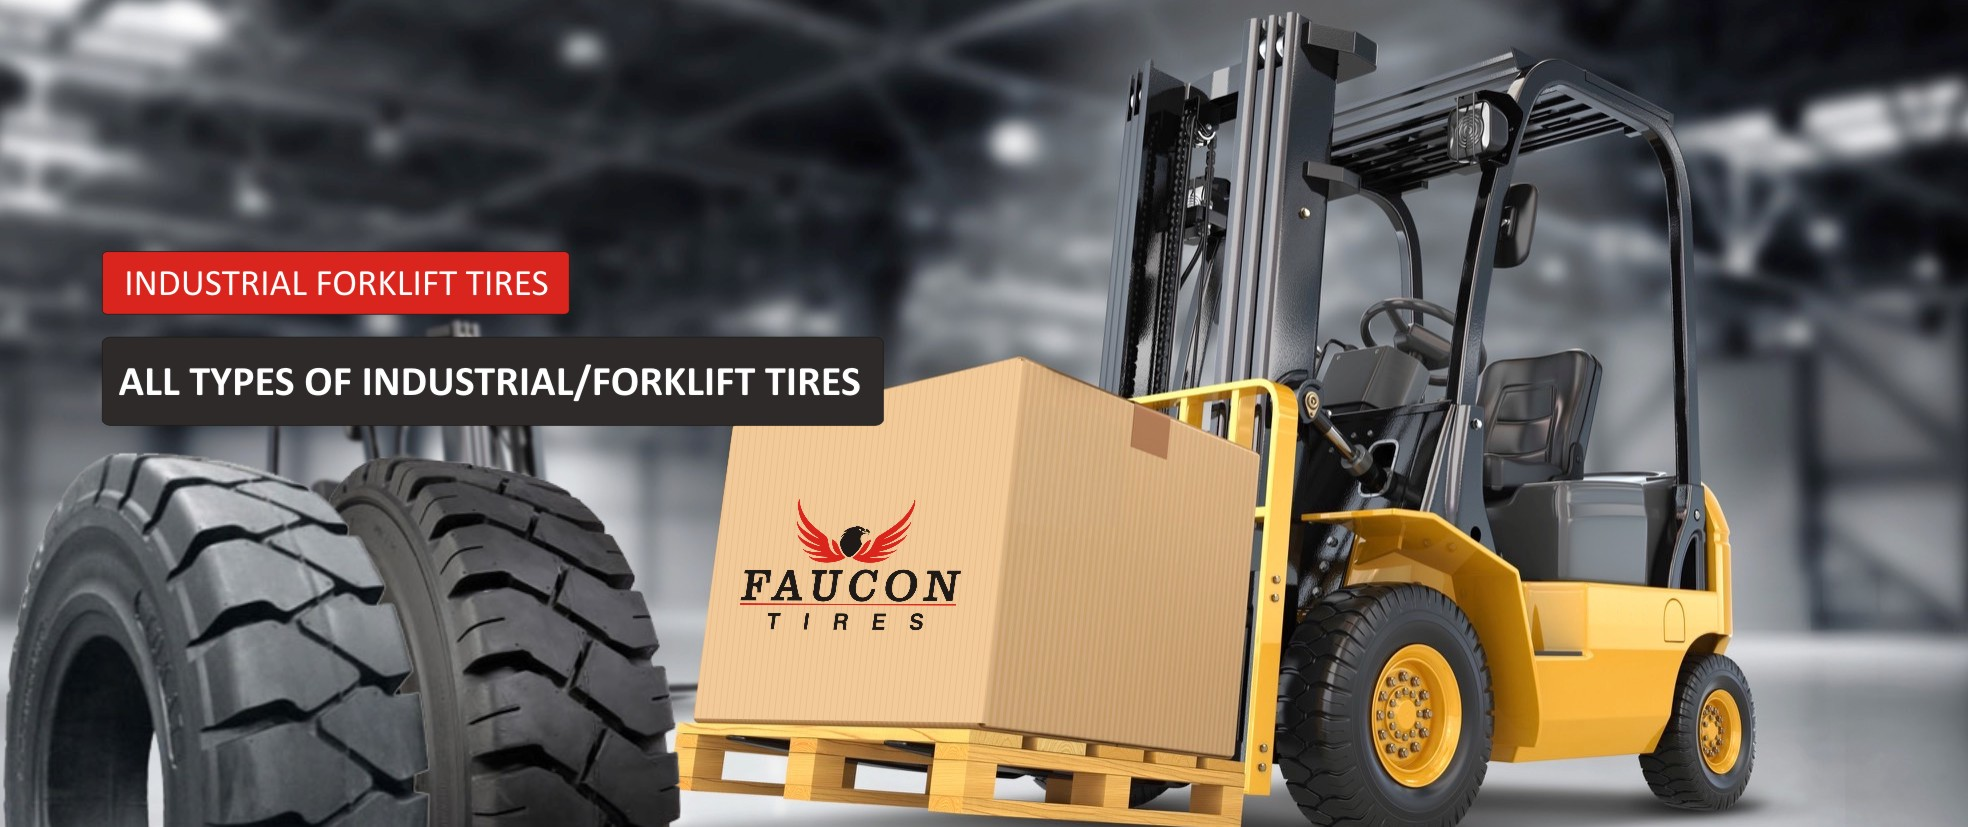 Industrial Forklift Tire